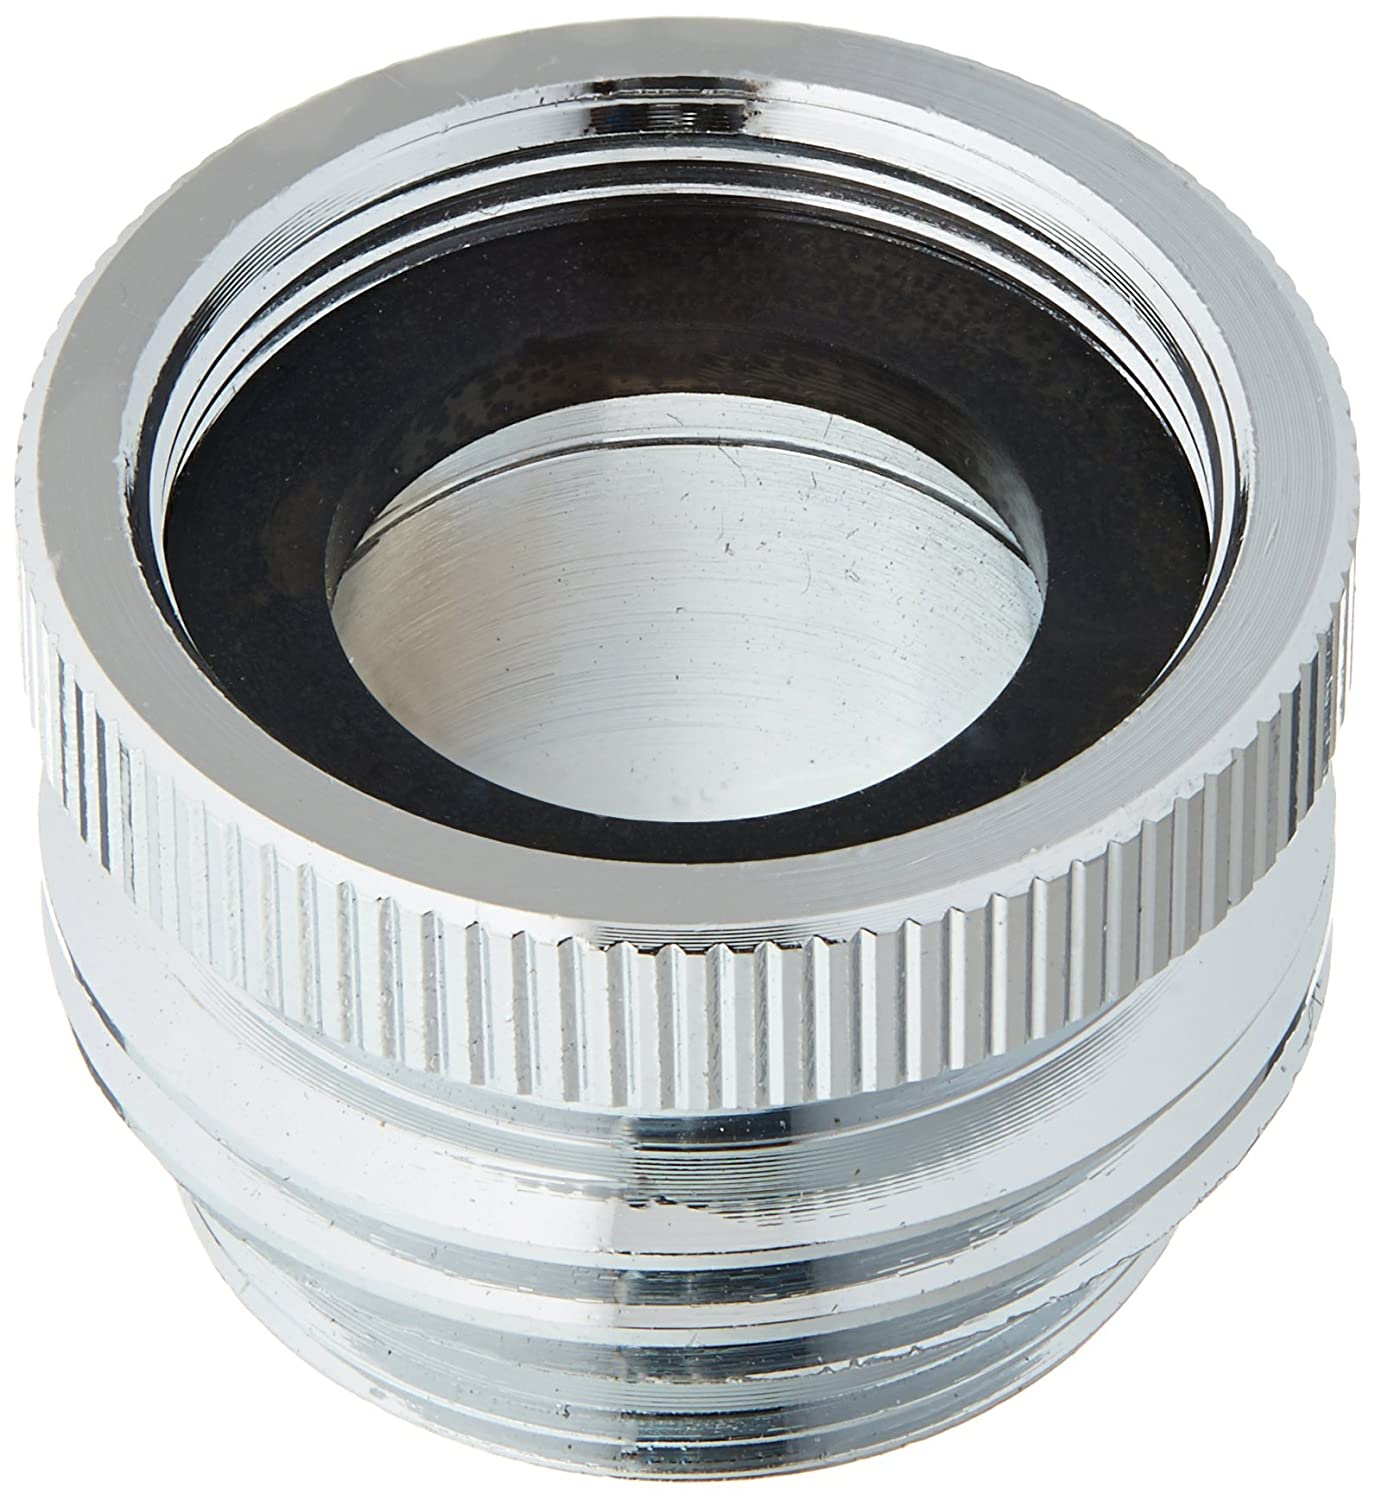 Plumb Craft Waxman 7615400LF Low Lead Garden Hose Adapter